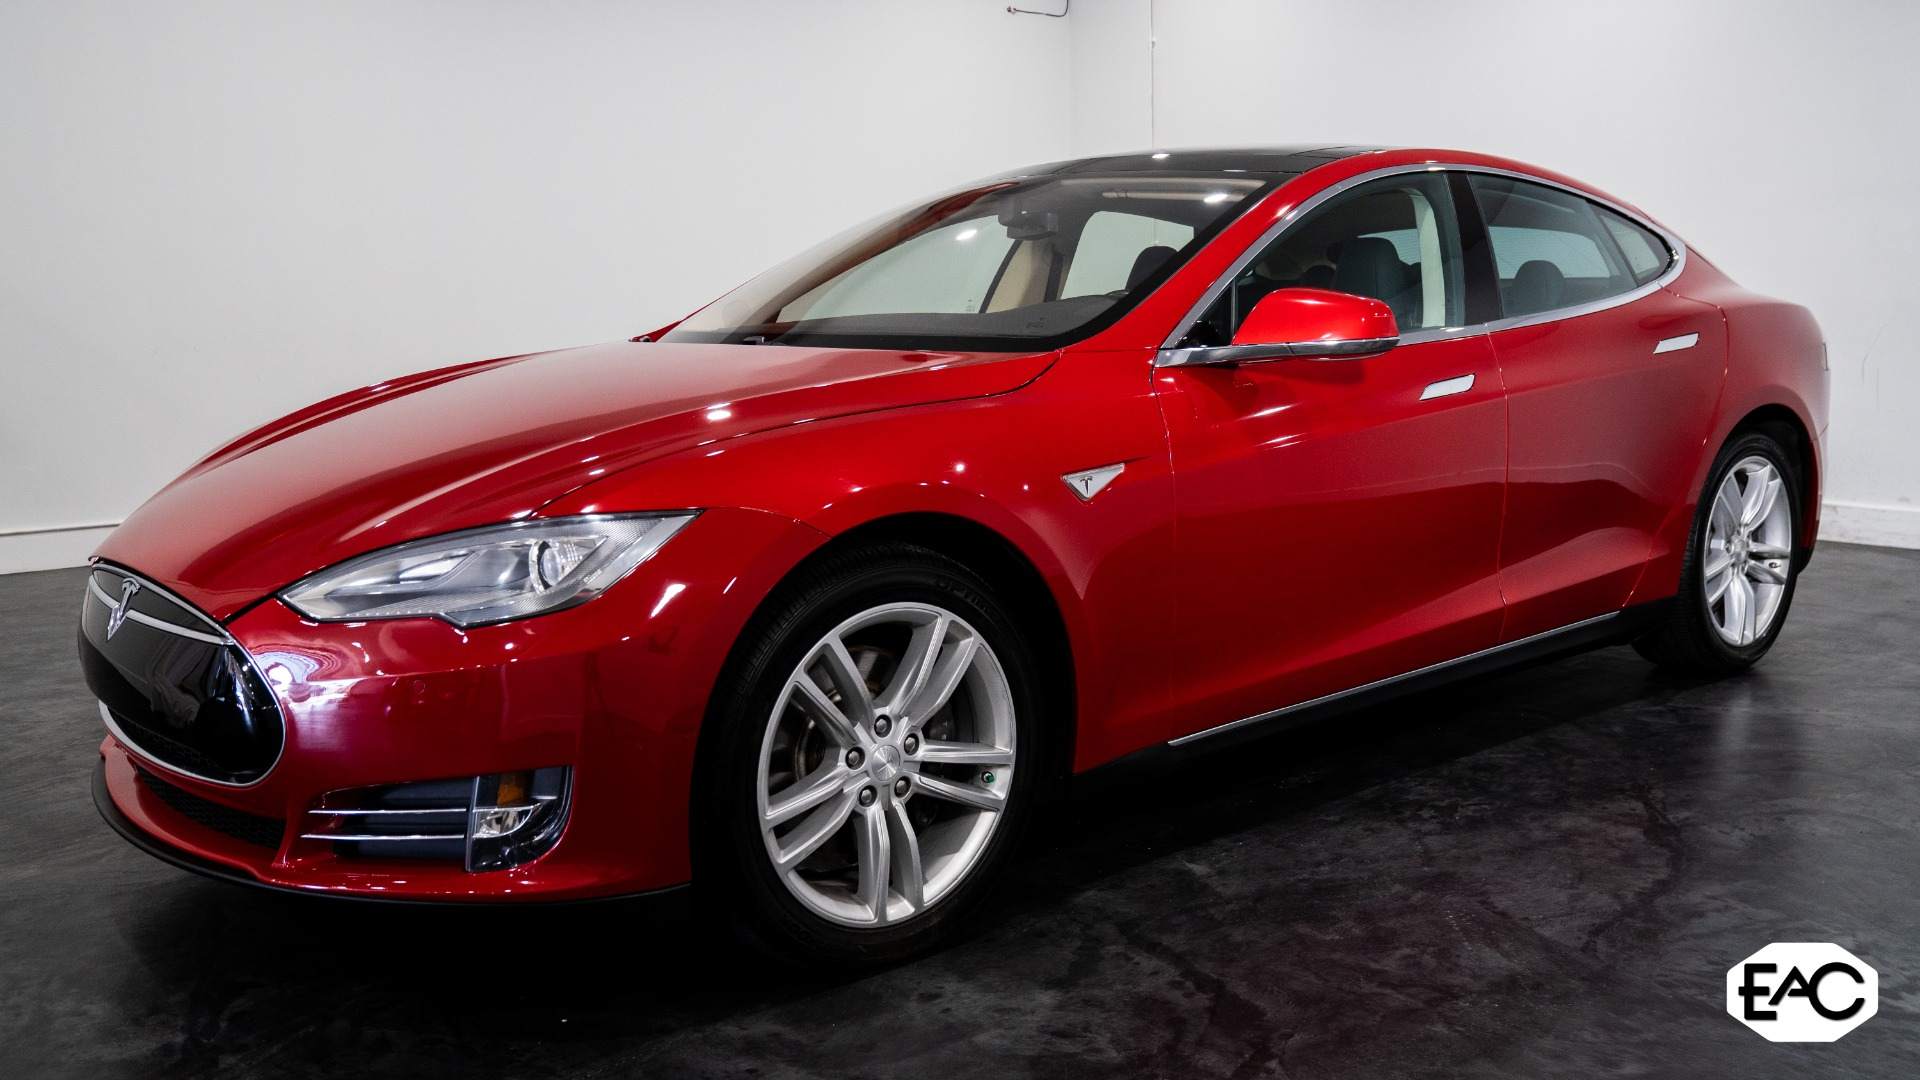 Used 2014 Tesla Model S 85 for sale $36,990 at Empire Auto Collection in Warren MI 48091 1